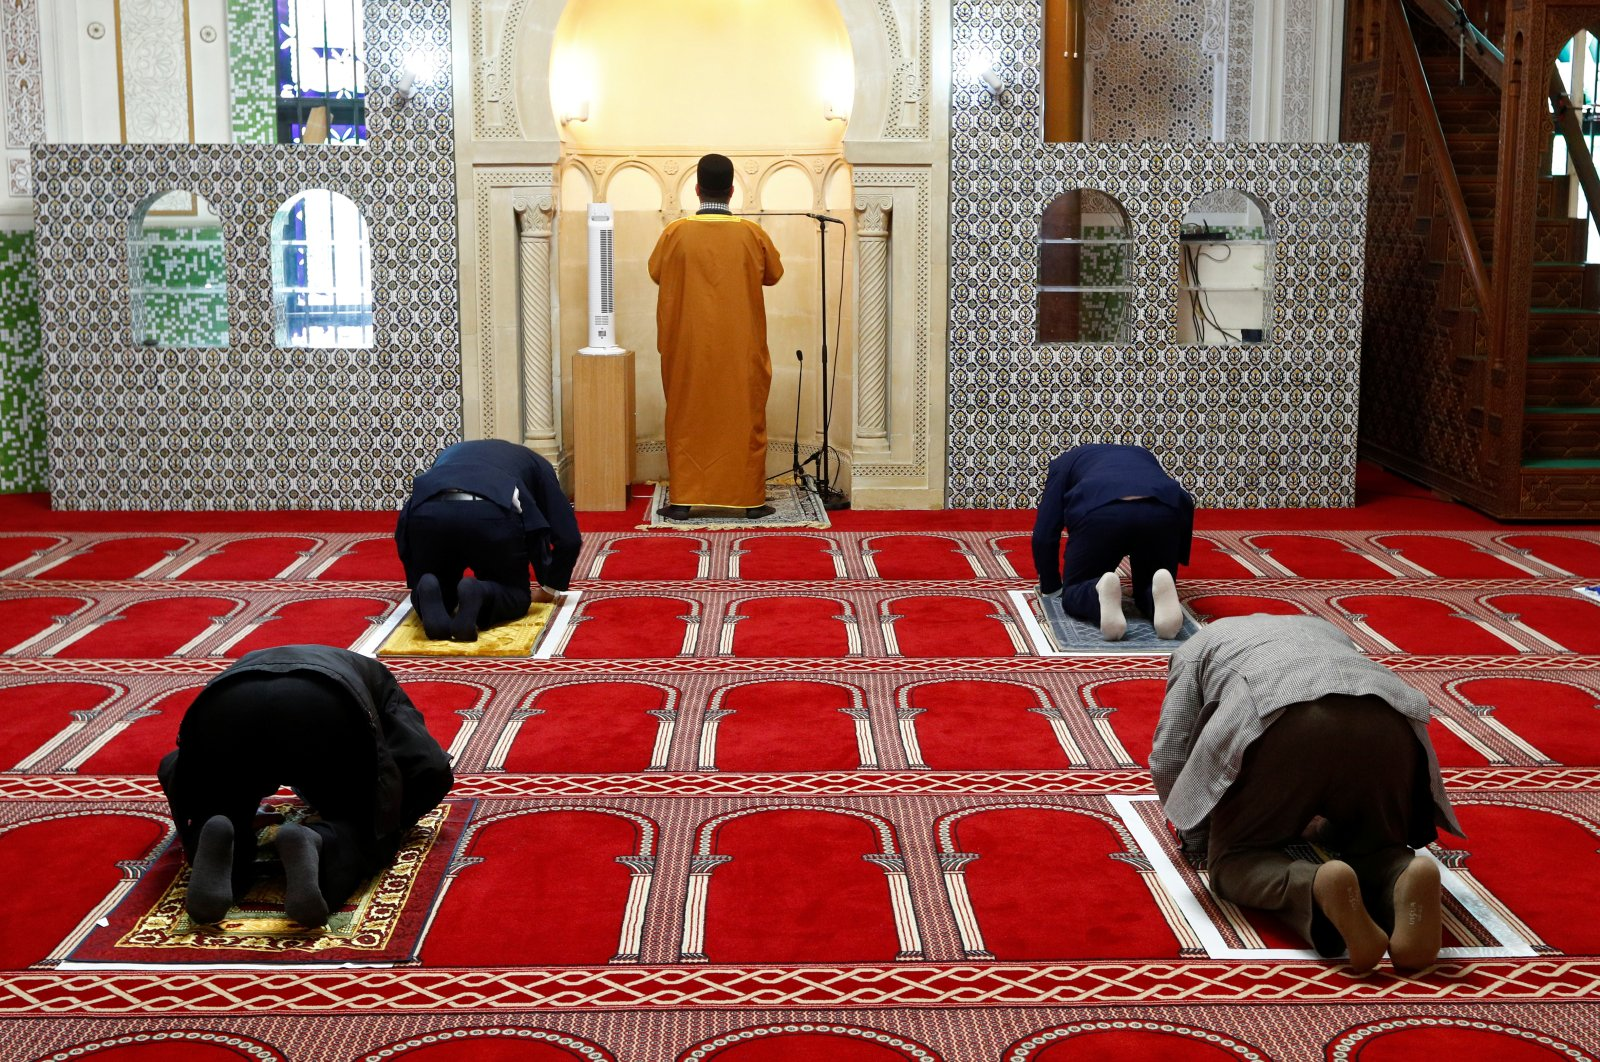 Muslims pray amid social distancing markers at the Grand Mosque, after weeks of lockdown restrictions following the coronavirus outbreak, Brussels, Belgium, June 8, 2020. (Reuters Photo)